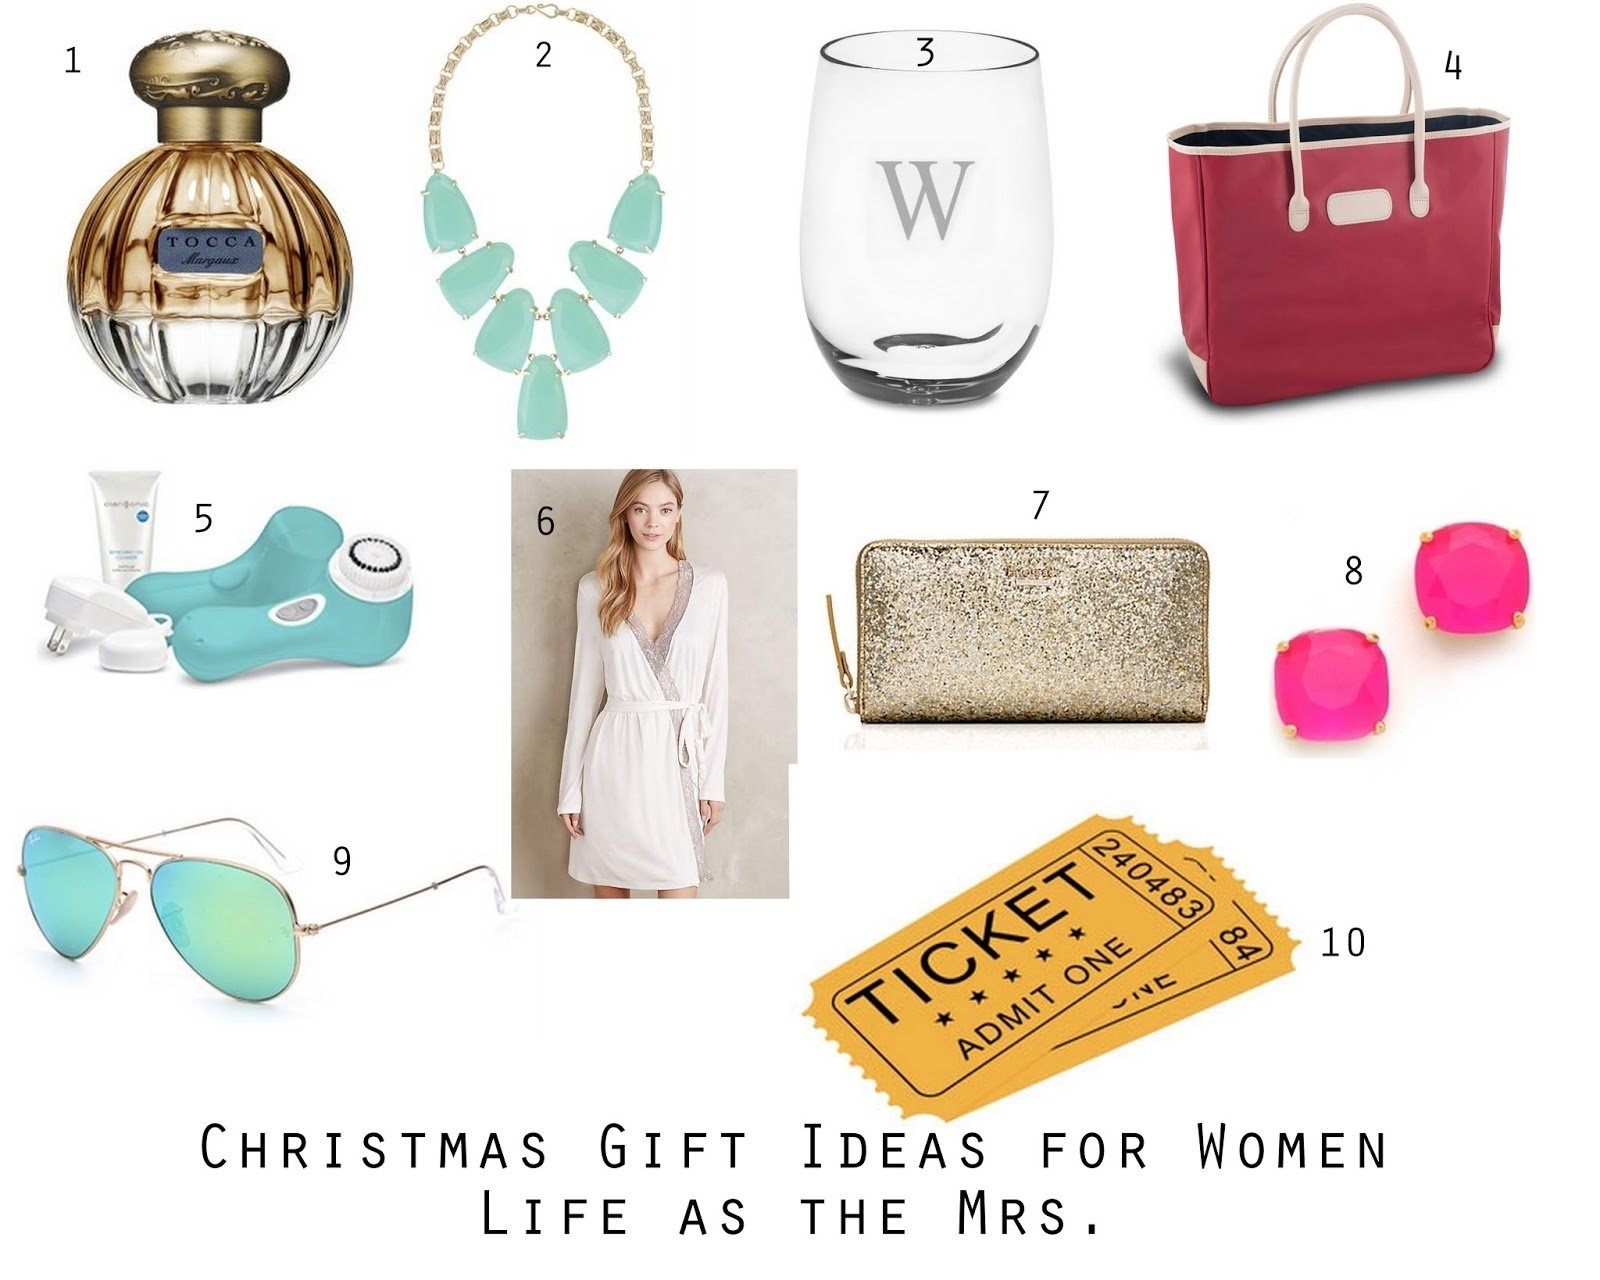 10 Famous Mother In Law Gift Ideas life as the mrs thoughts for thursday christmas gift ideas for women 1 2020